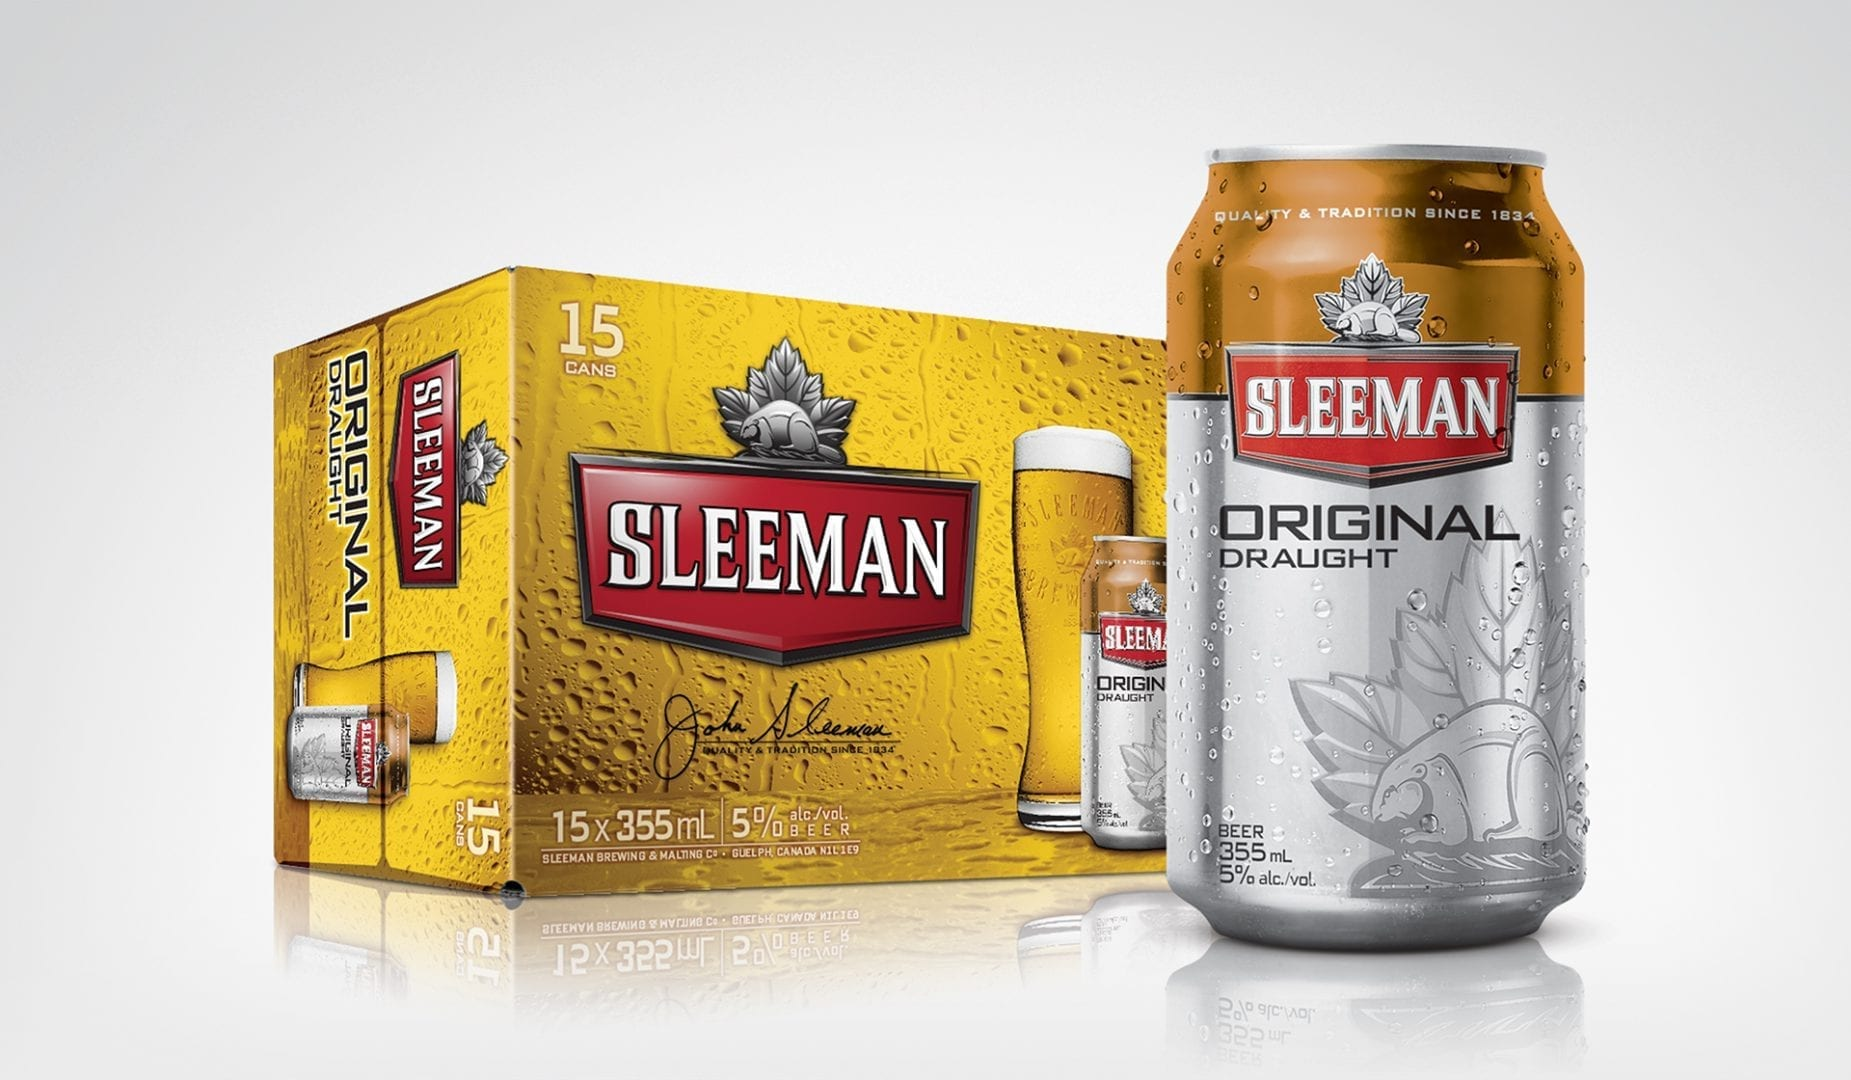 Sleeman beer can design concept